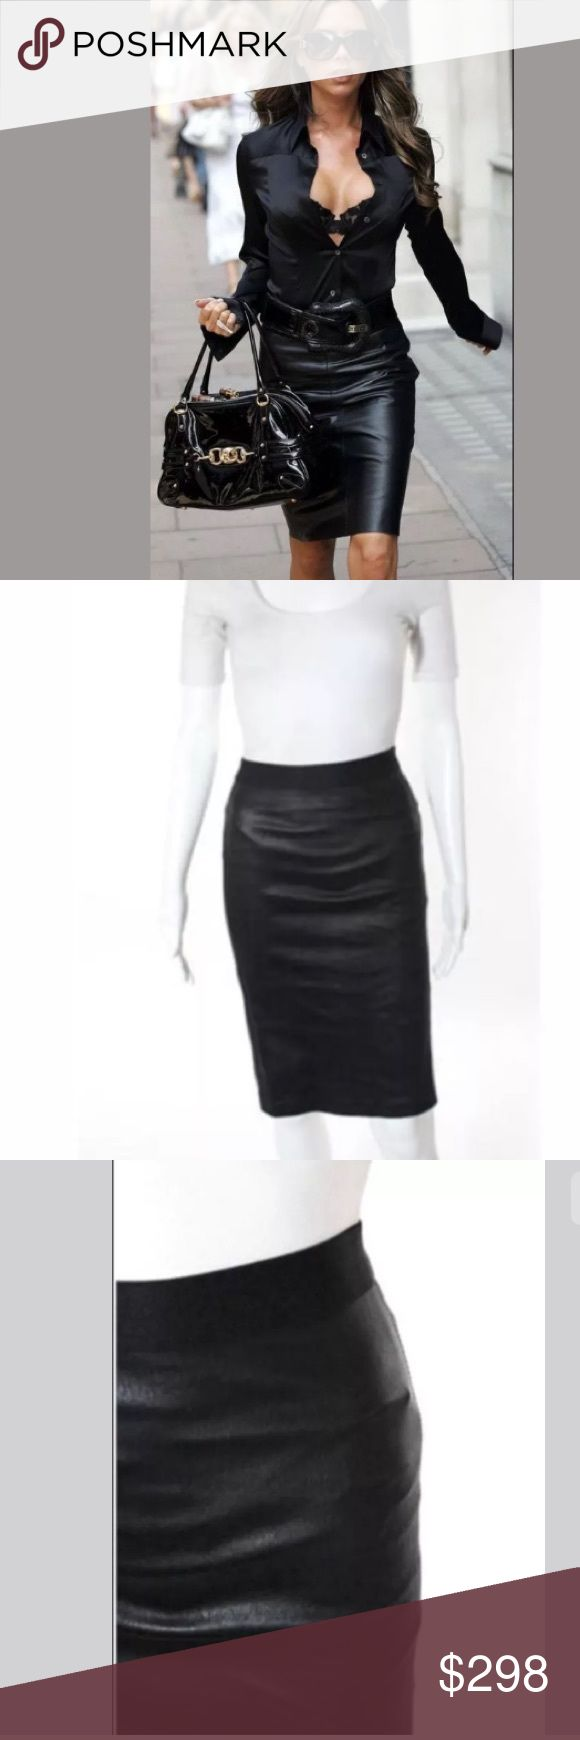 HELMUT LANG 100 % Lamb LEATHER PENCIL SKIRT, SZ 2 HELMUTLANGBlack 100 % Leather Stretch Elastic Waist Pencil Skirt Sz 2 Helmut Lang brings sexy back in the simplest of ways with this taught leather pencil skirt craf. Stretch Plonge 2. Black lamb leather. Elasticated waistband, single back split vent, an top stitching. 100% Leather. Fitted and tapered. •Closure:Pull On •Print:Solid •Pockets:None •Size:Two •Color:Black •Lining:Unlined •Fabric:Leather PRE-OWNED: •Very…